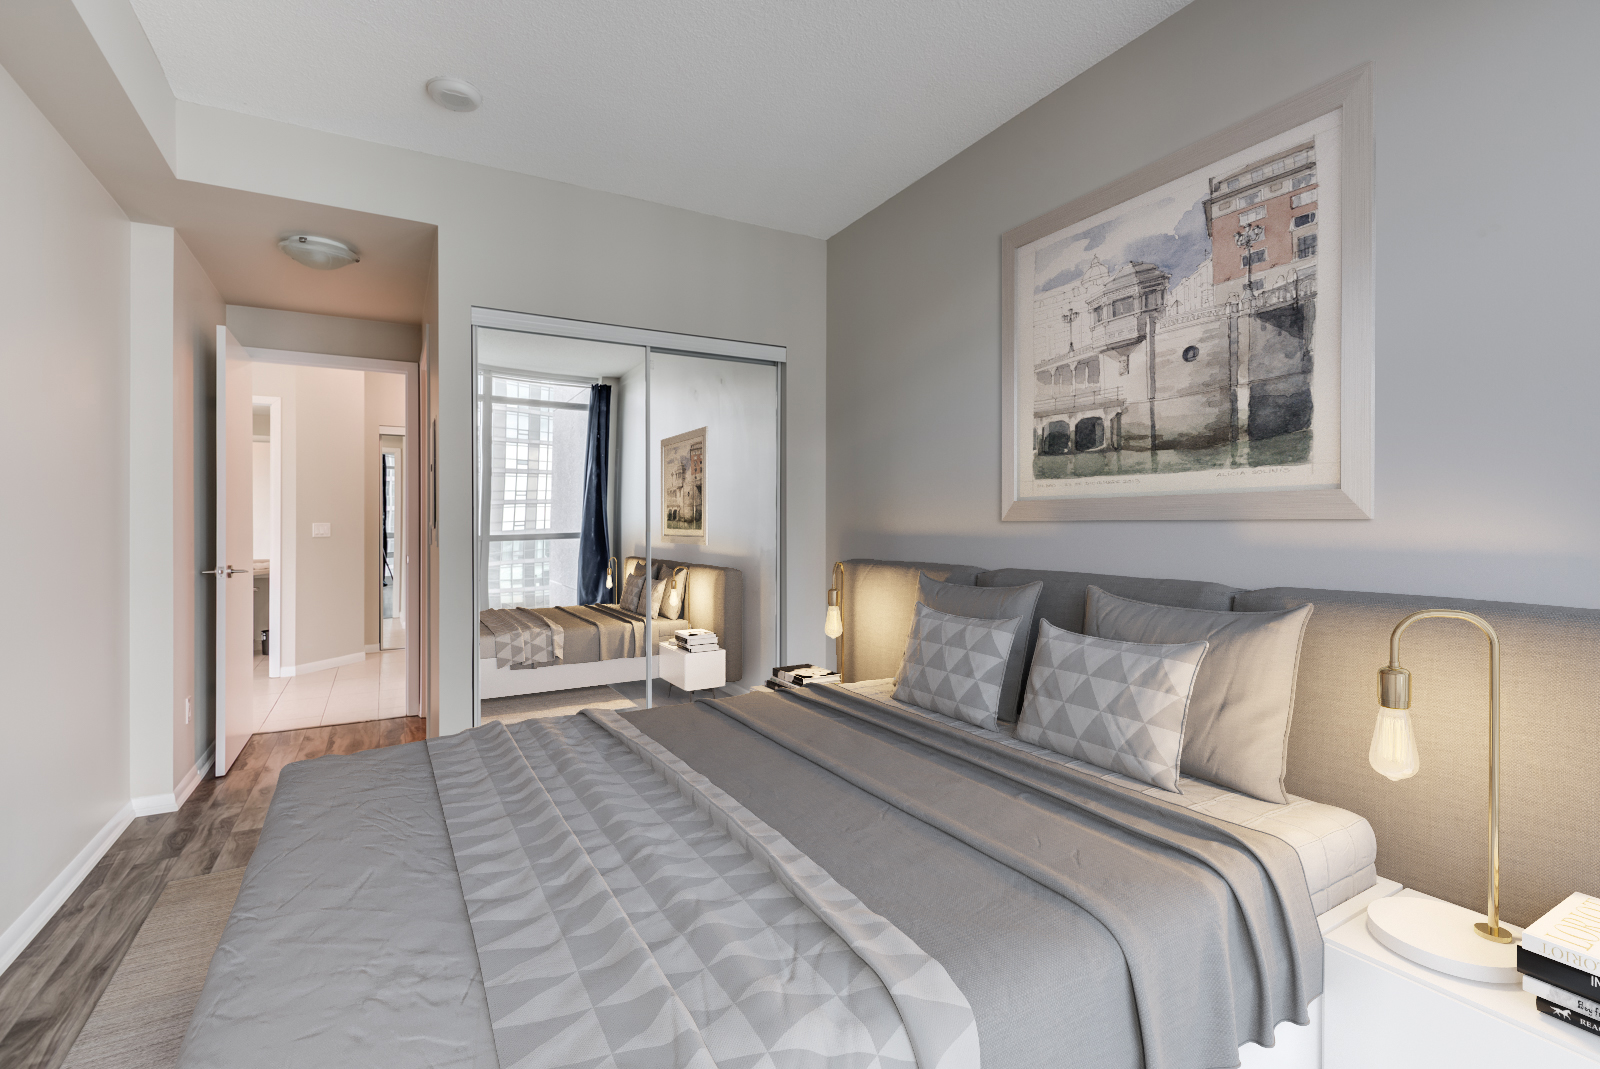 3D render of 215 Fort York Blvd master bedroom with large bed and headboard.